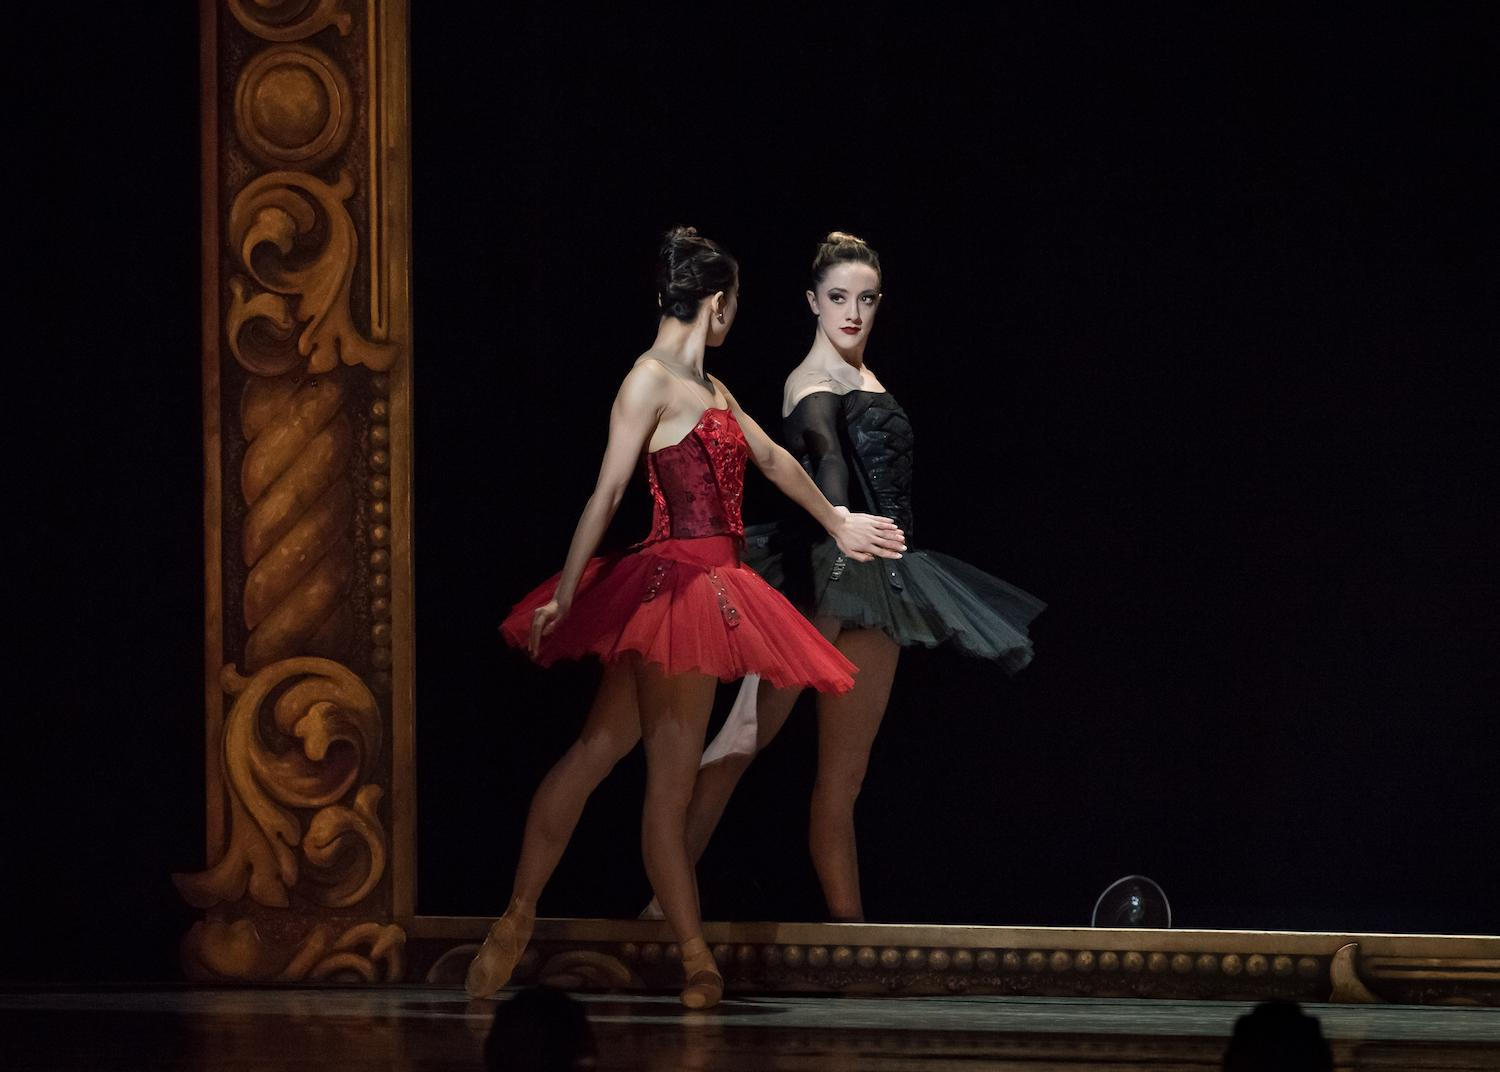 "Pictured: Cincinnati Ballet dancers Sirui Liu and Samantha Griffin in ""Facades"" / Event: Director's Cut, Musical Masters (March 15-18) / Image: Peter Mueller // Published: 4.5.18"